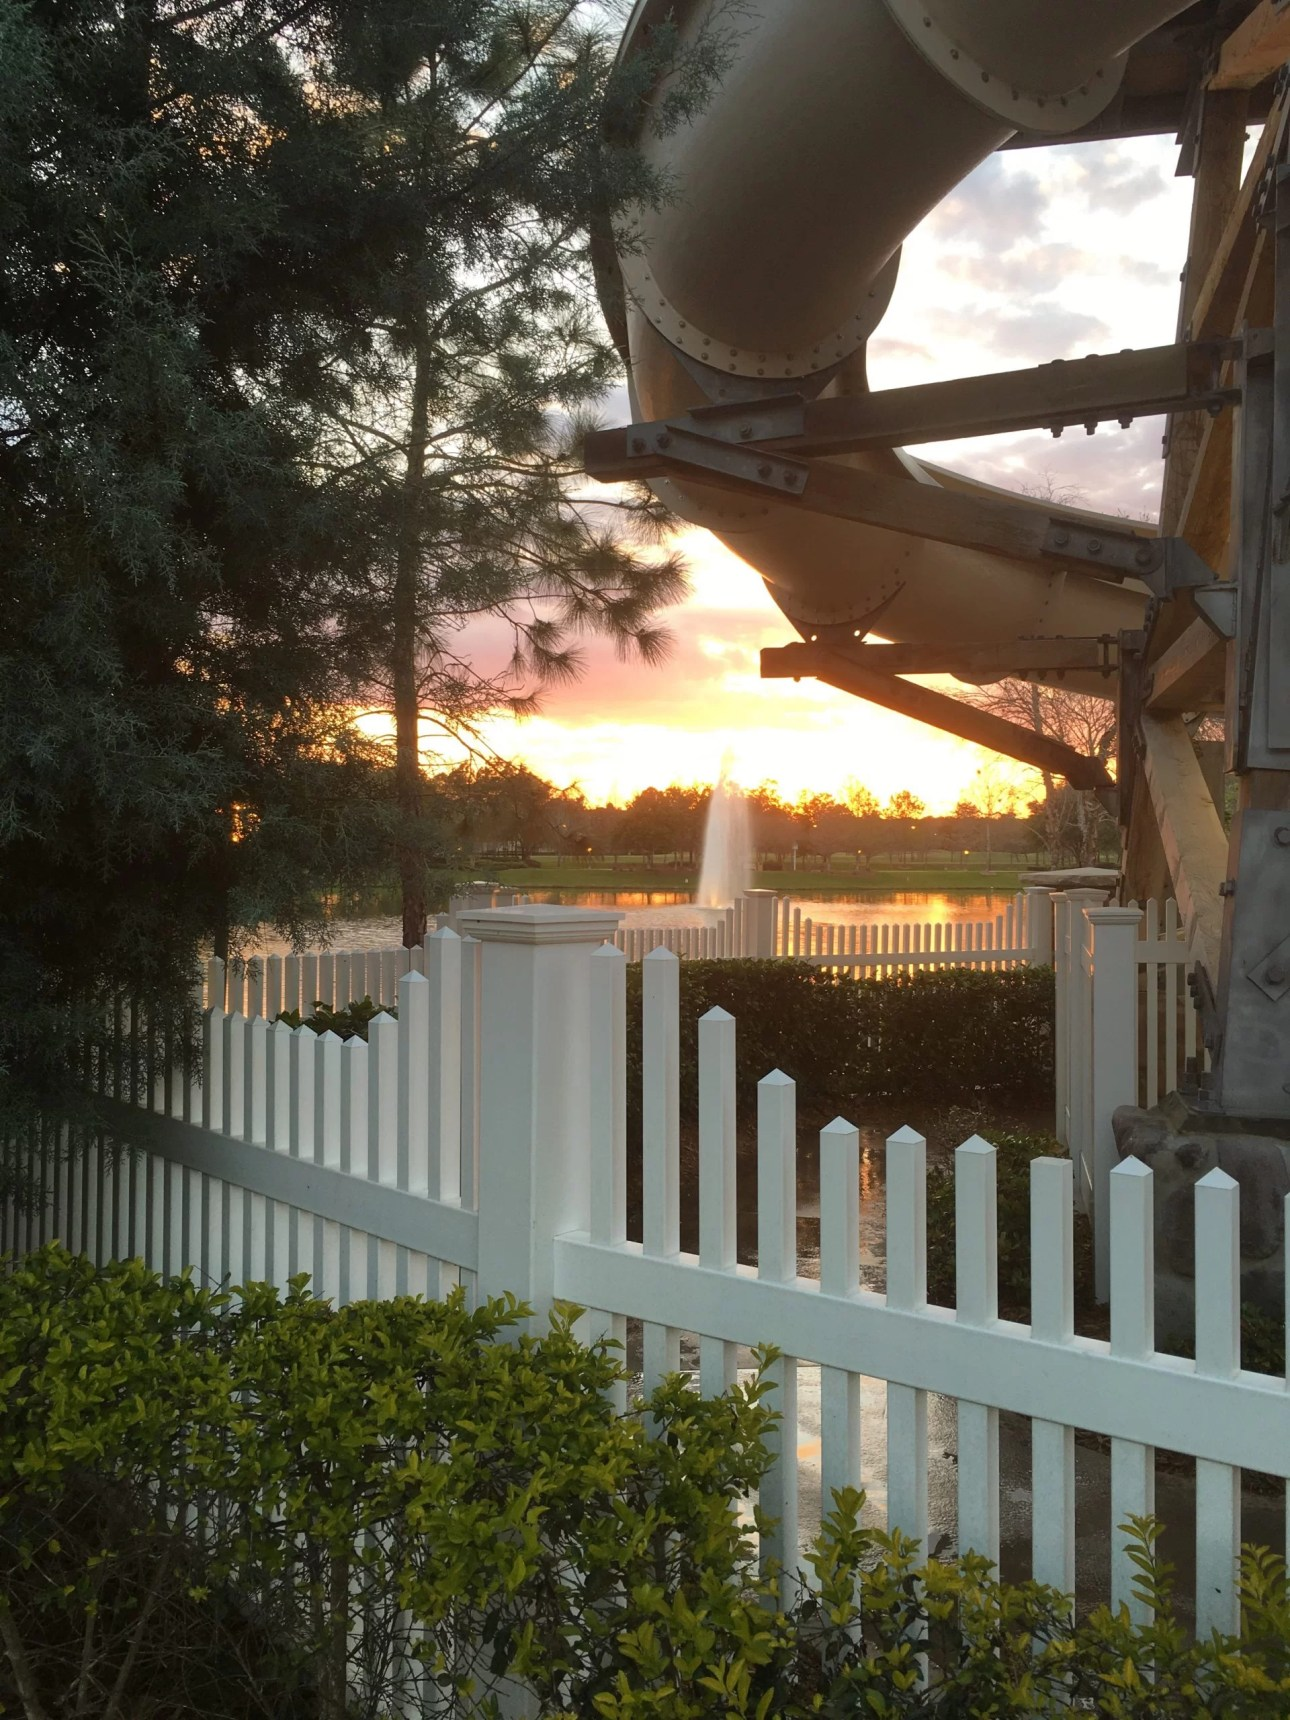 The Paddock pool water slide in front of a sunset next to a pine tree with a fountain and a white picket fence.